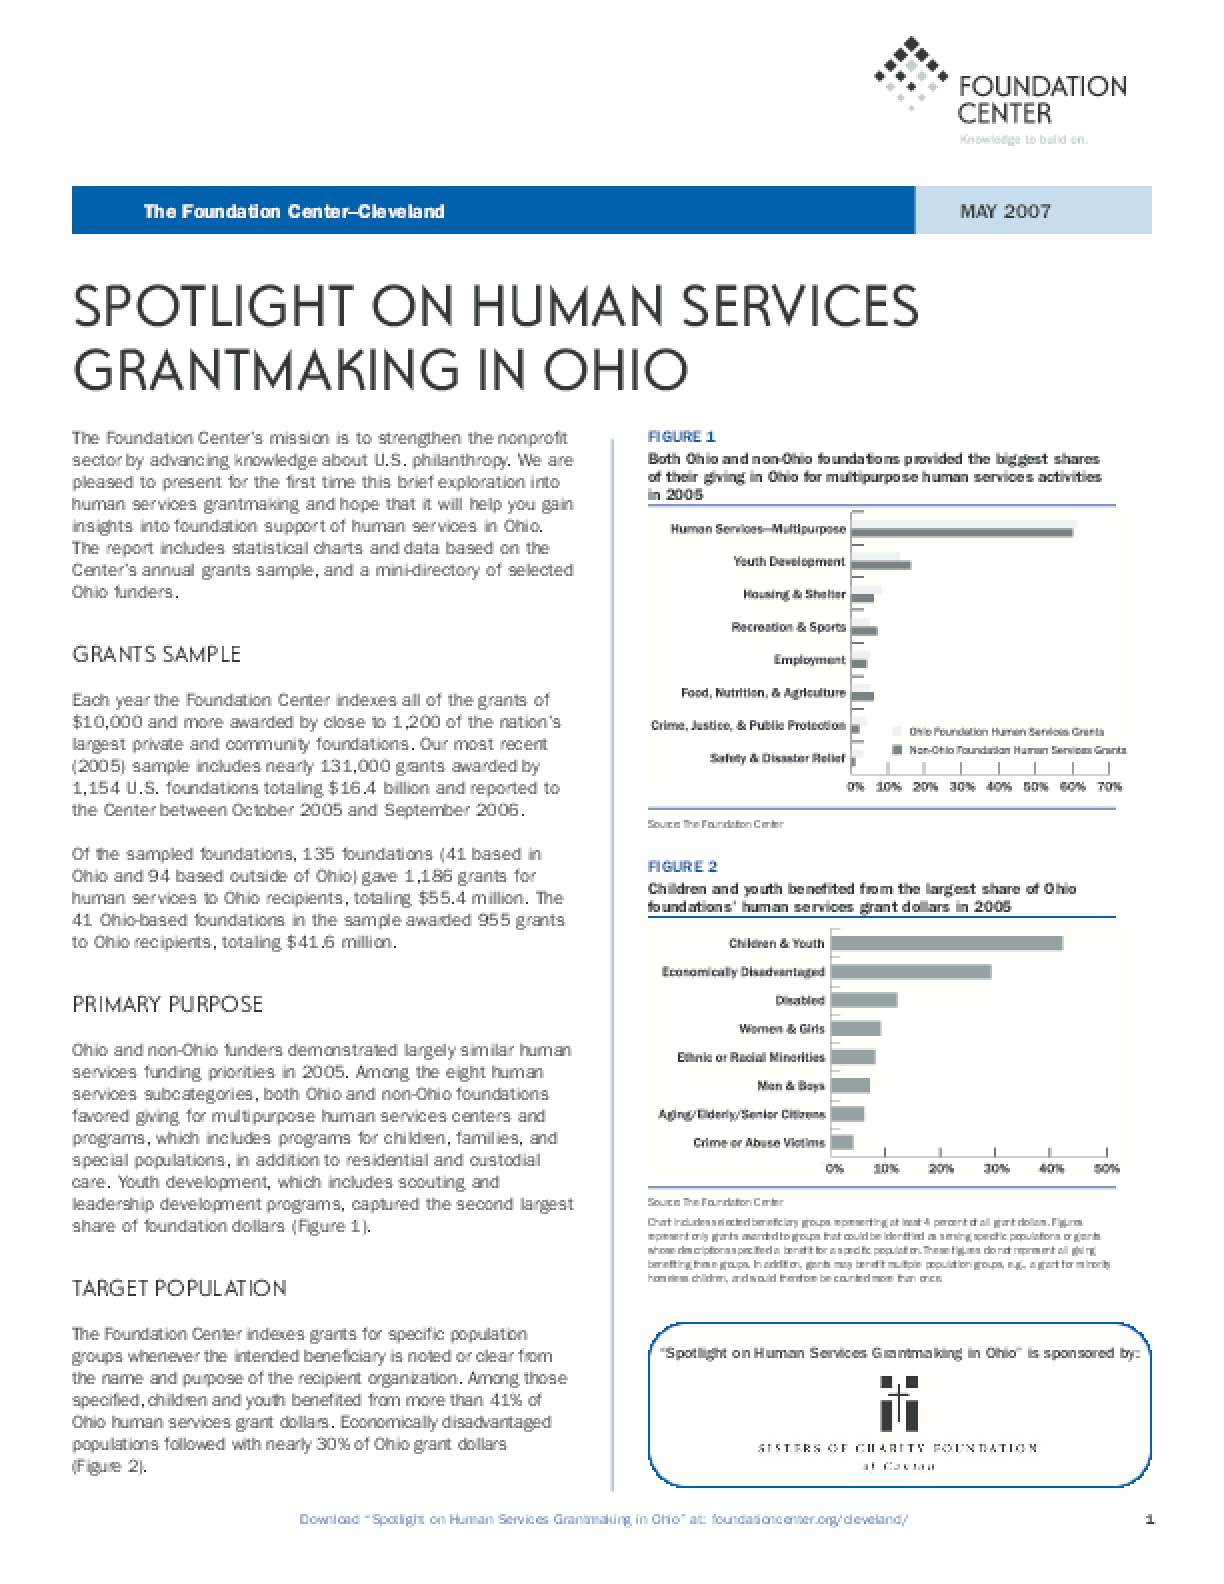 Spotlight on Human Services Grantmaking in Ohio